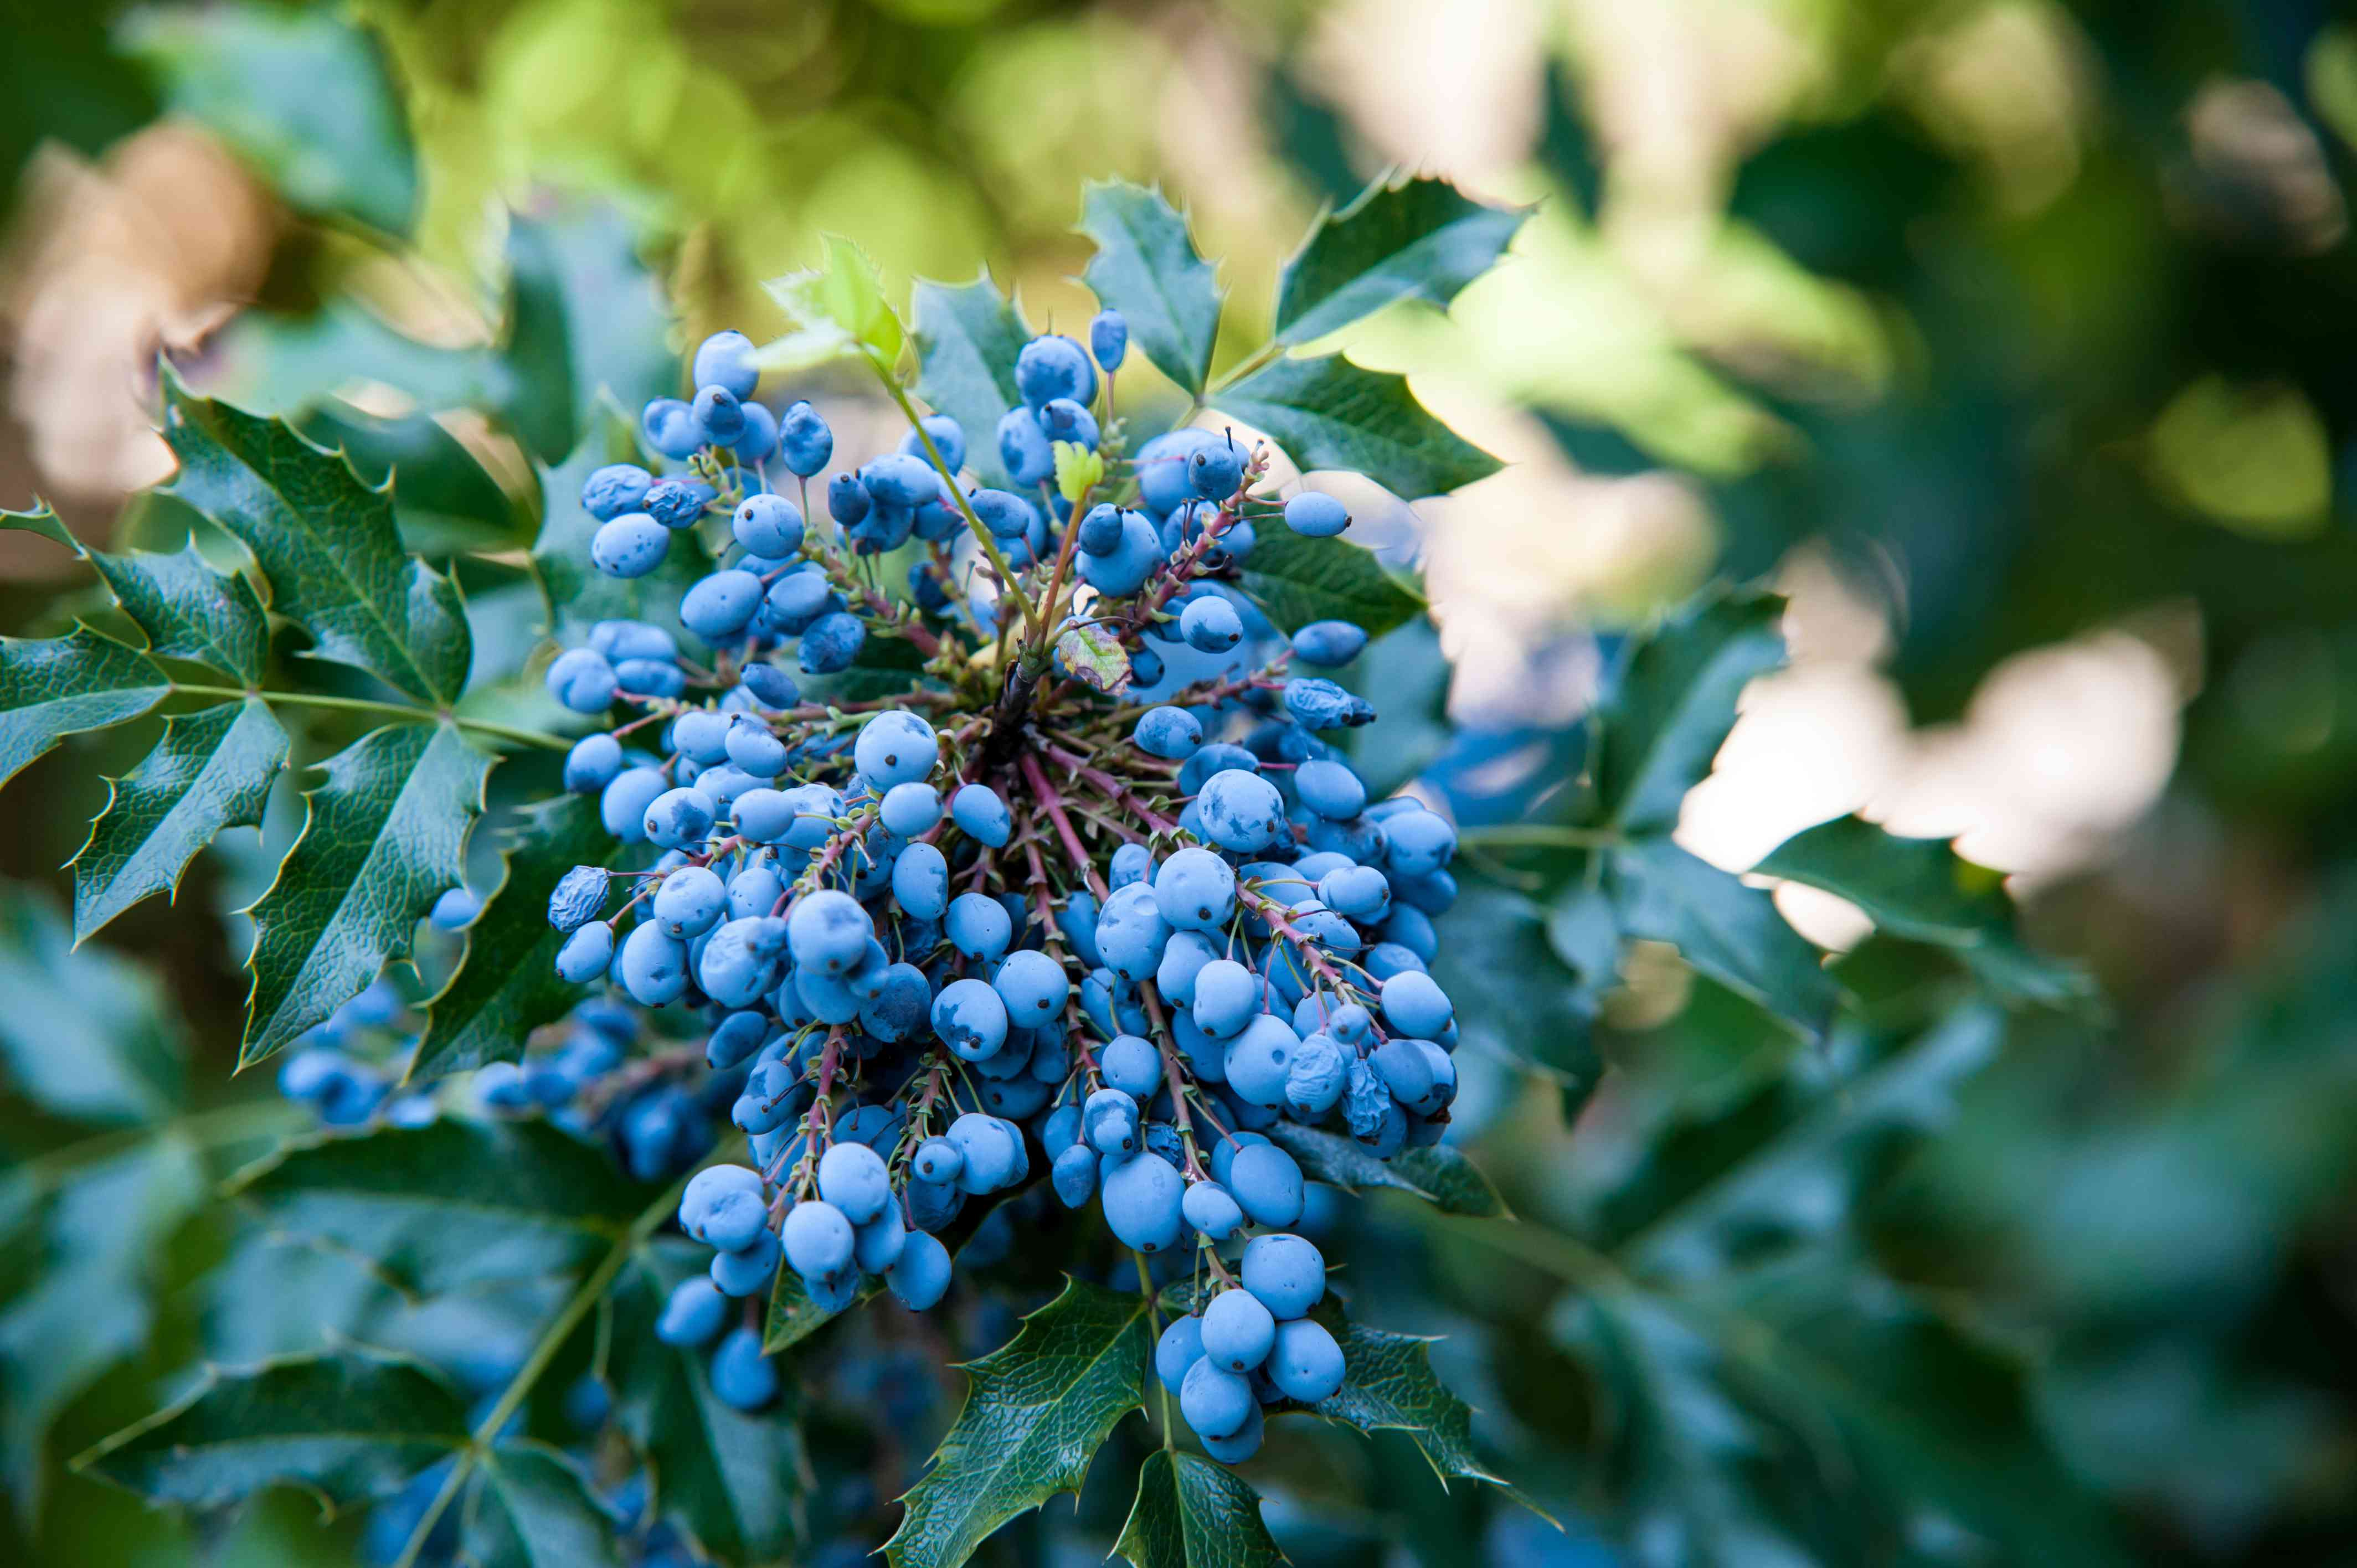 Oregon grape shrub branch with light blue grapes and leaves